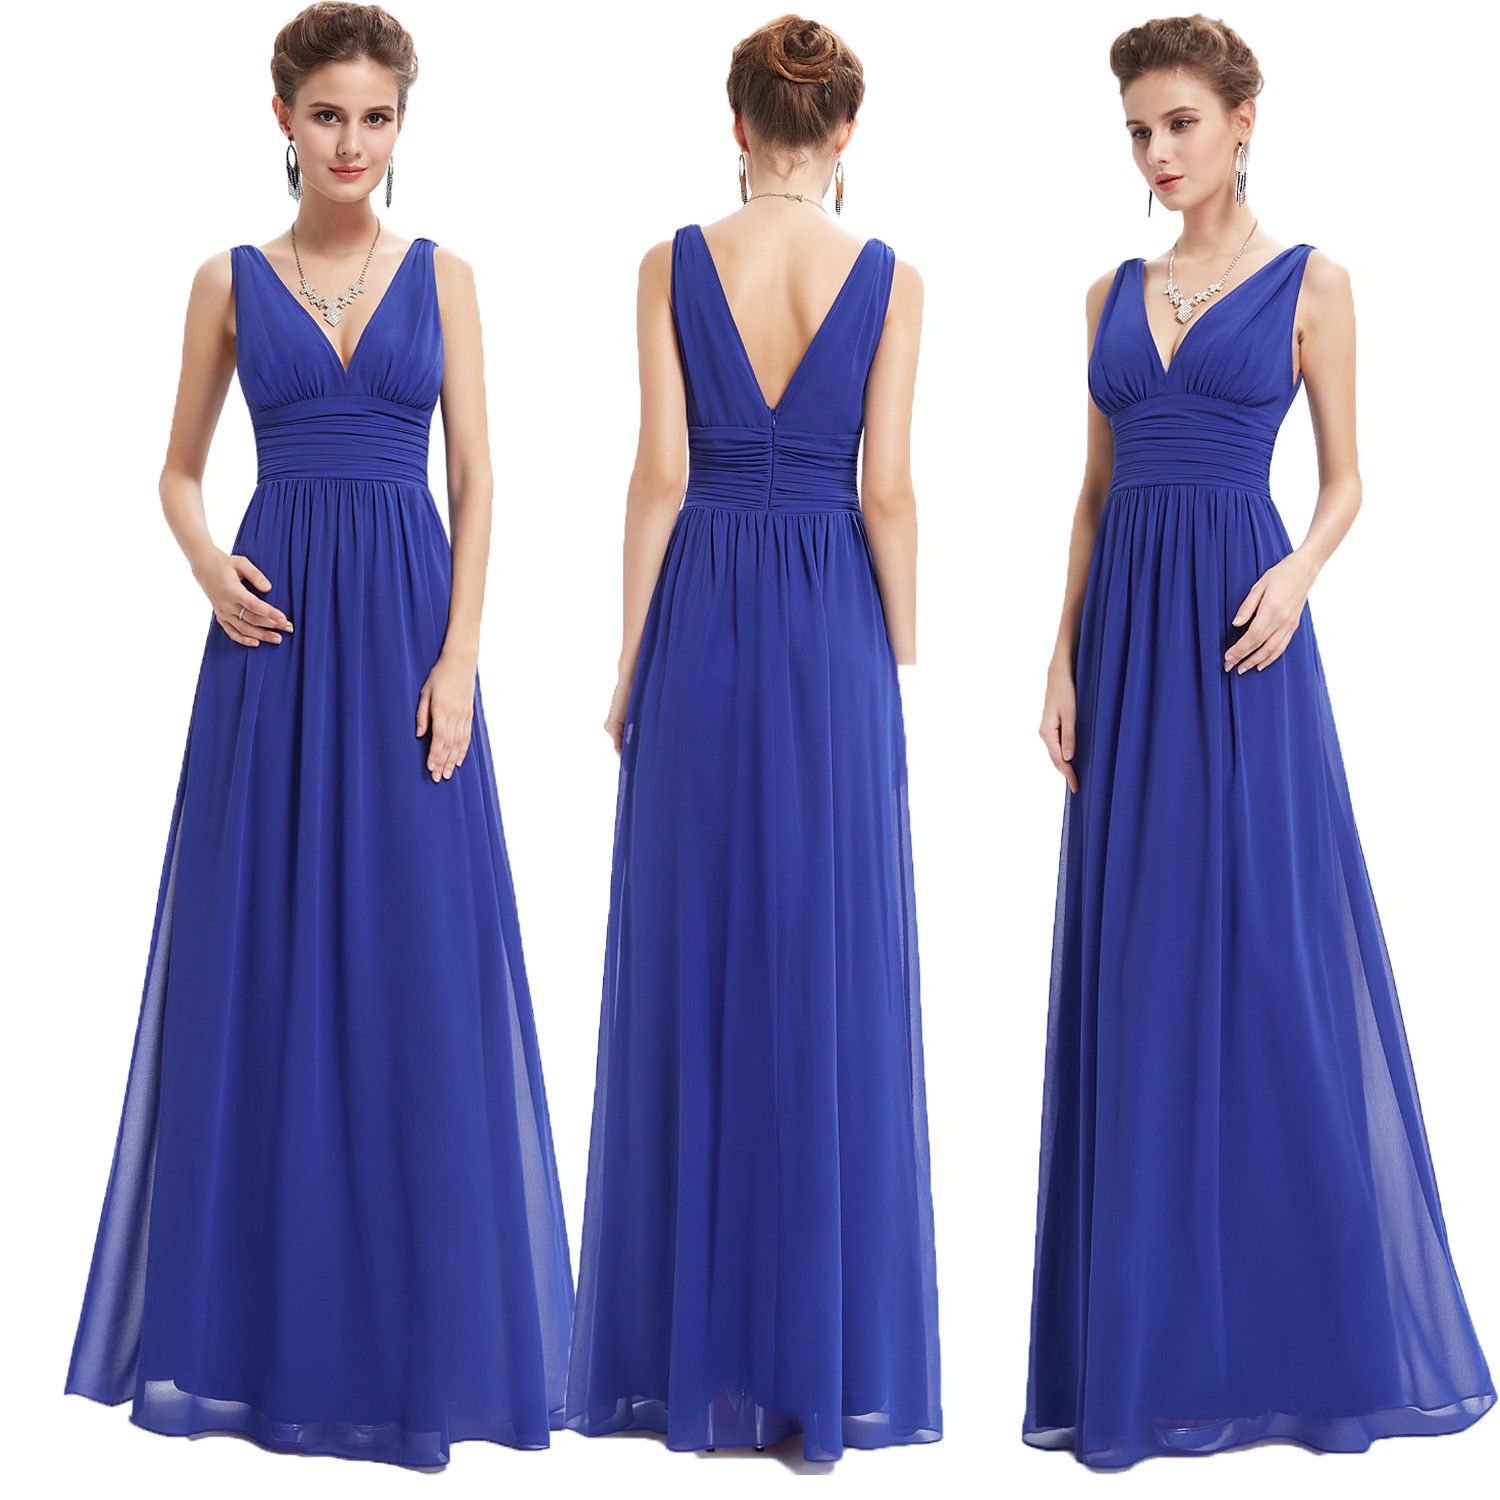 Dress style 09016 – special price R 450 ( BEFORE R1285) – Preloved